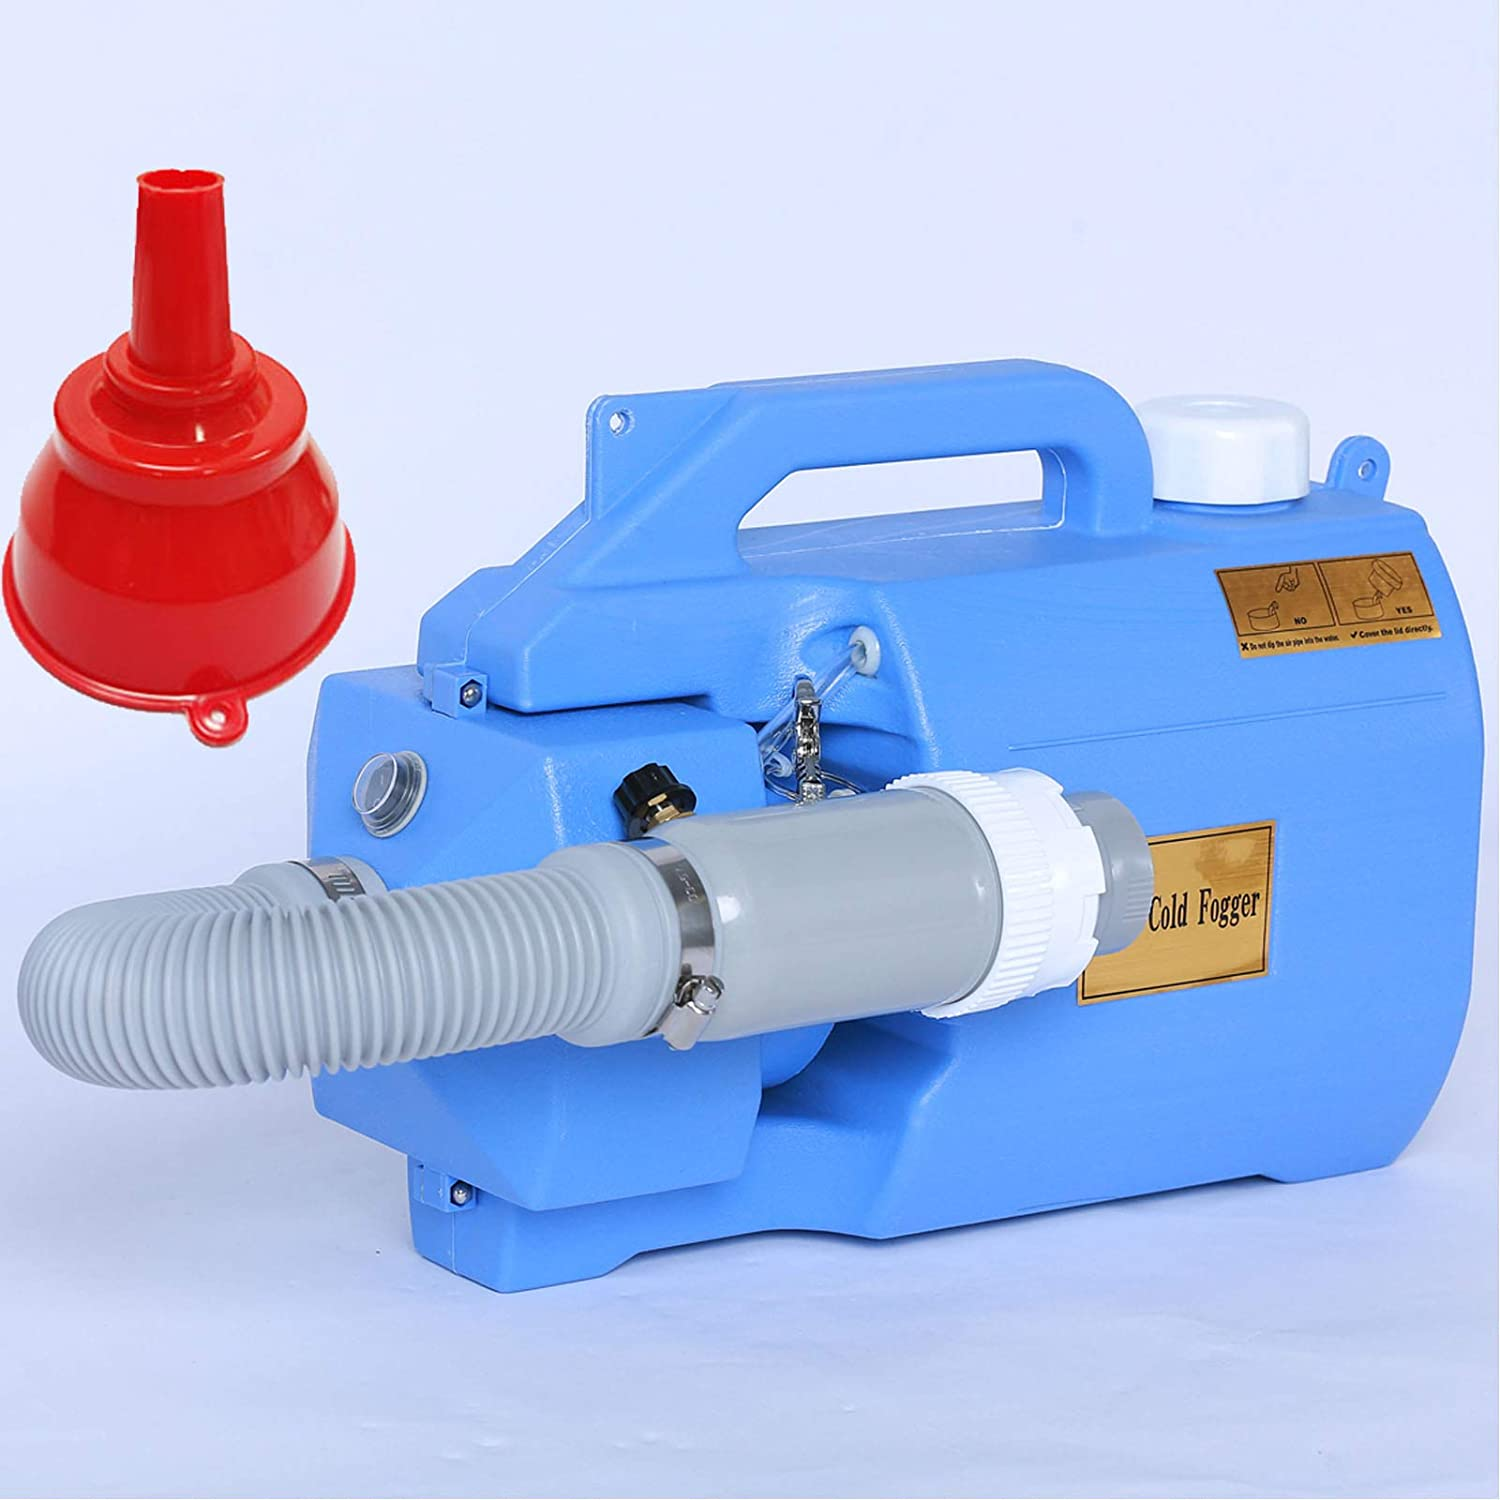 Ranking TOP20 INMAKER Disinfectant Fogger Machine 2 Sprayer Pcs 1.3 Quantity limited Electric